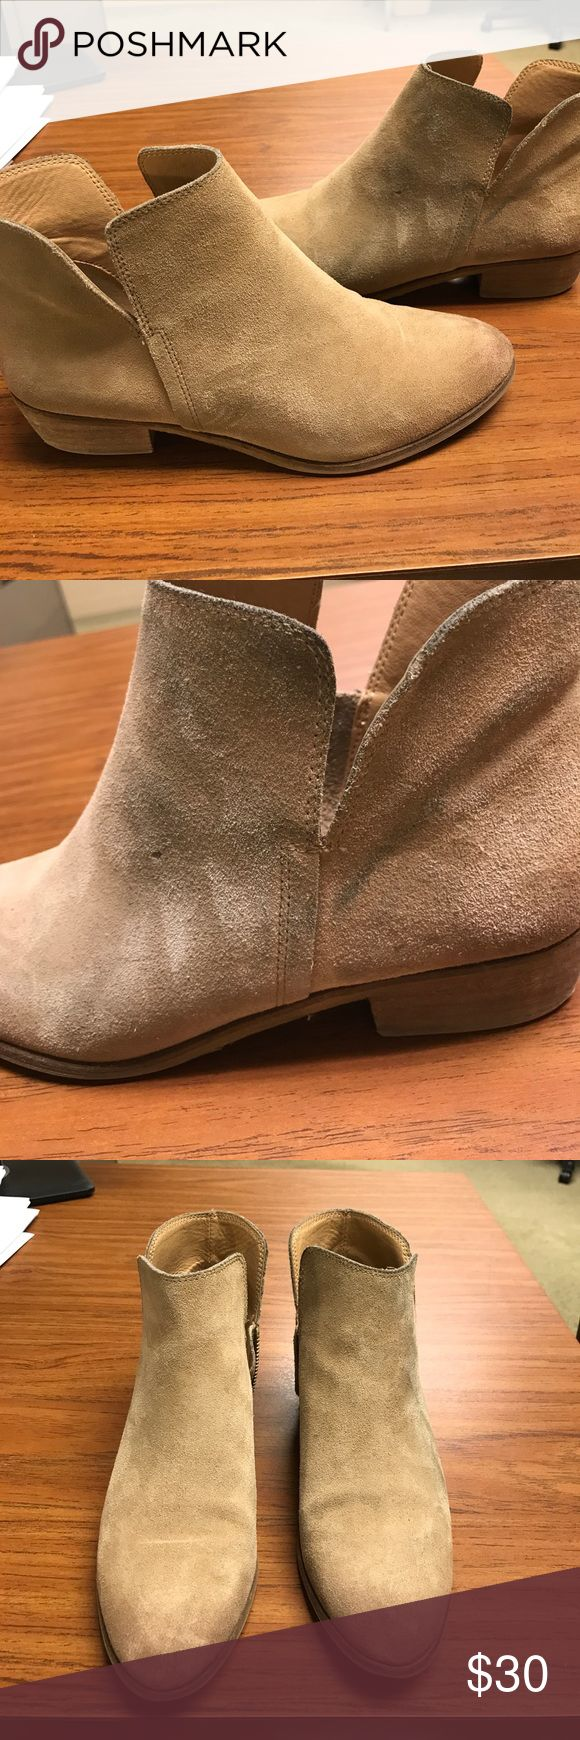 "Splendid Hampton suede bootie in sand, size 9 Splendid Hamptyn Suede ankle Chelsea bootie in ""sand"" color, size 9. Right bottle has some marks as shown. Used but still good wearable condition. List price is set with condition in mind and is firm. Splendid Shoes Ankle Boots & Booties"